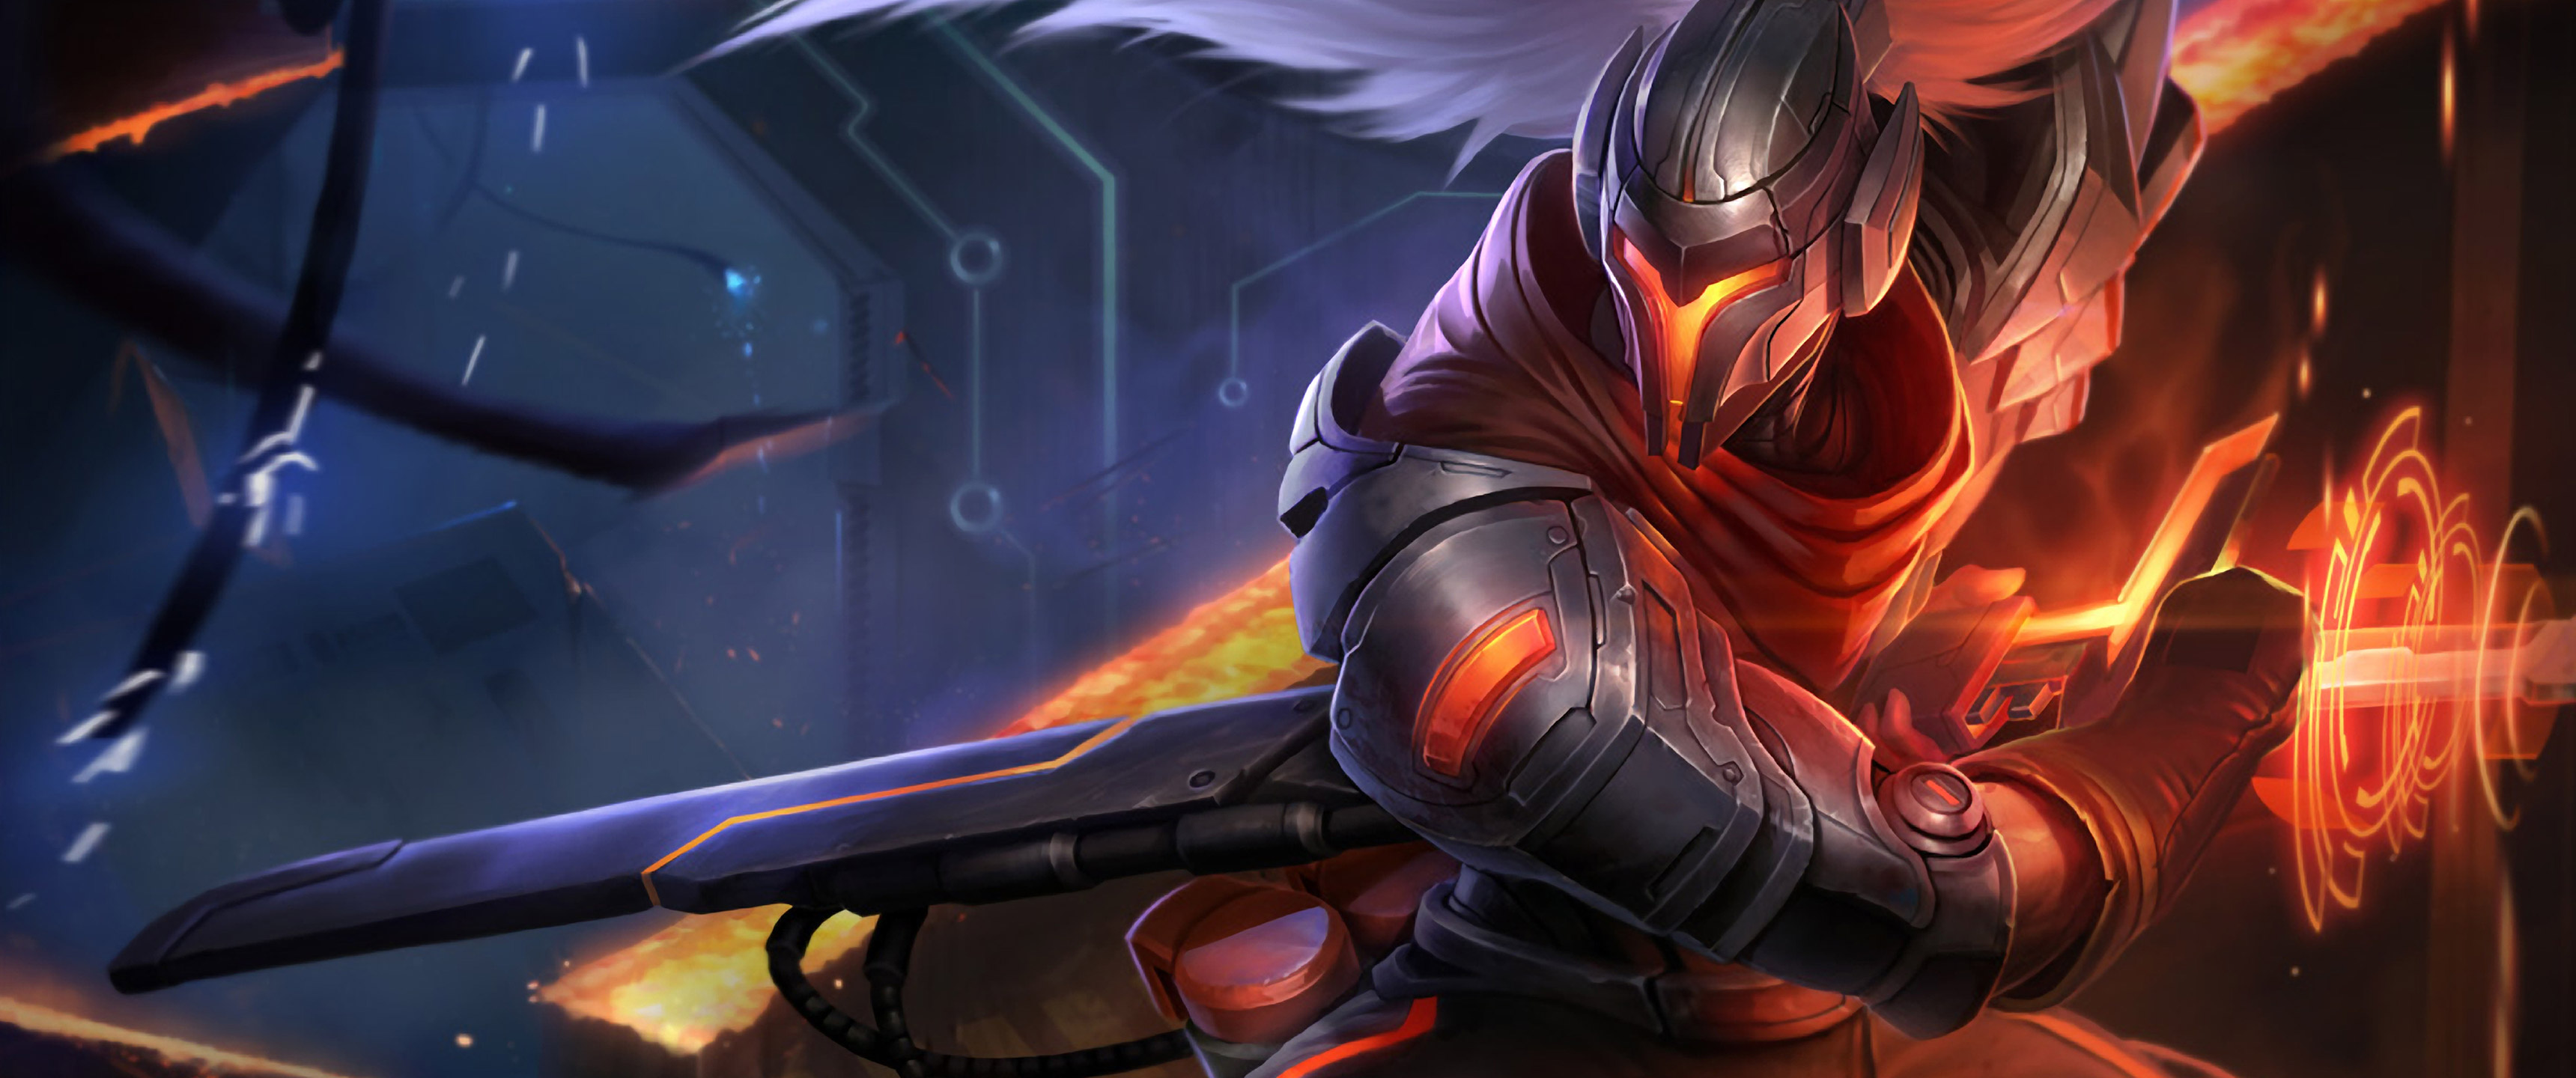 Yasuo Computer Wallpapers Desktop Backgrounds 3440x1440 ID663780 3440x1440